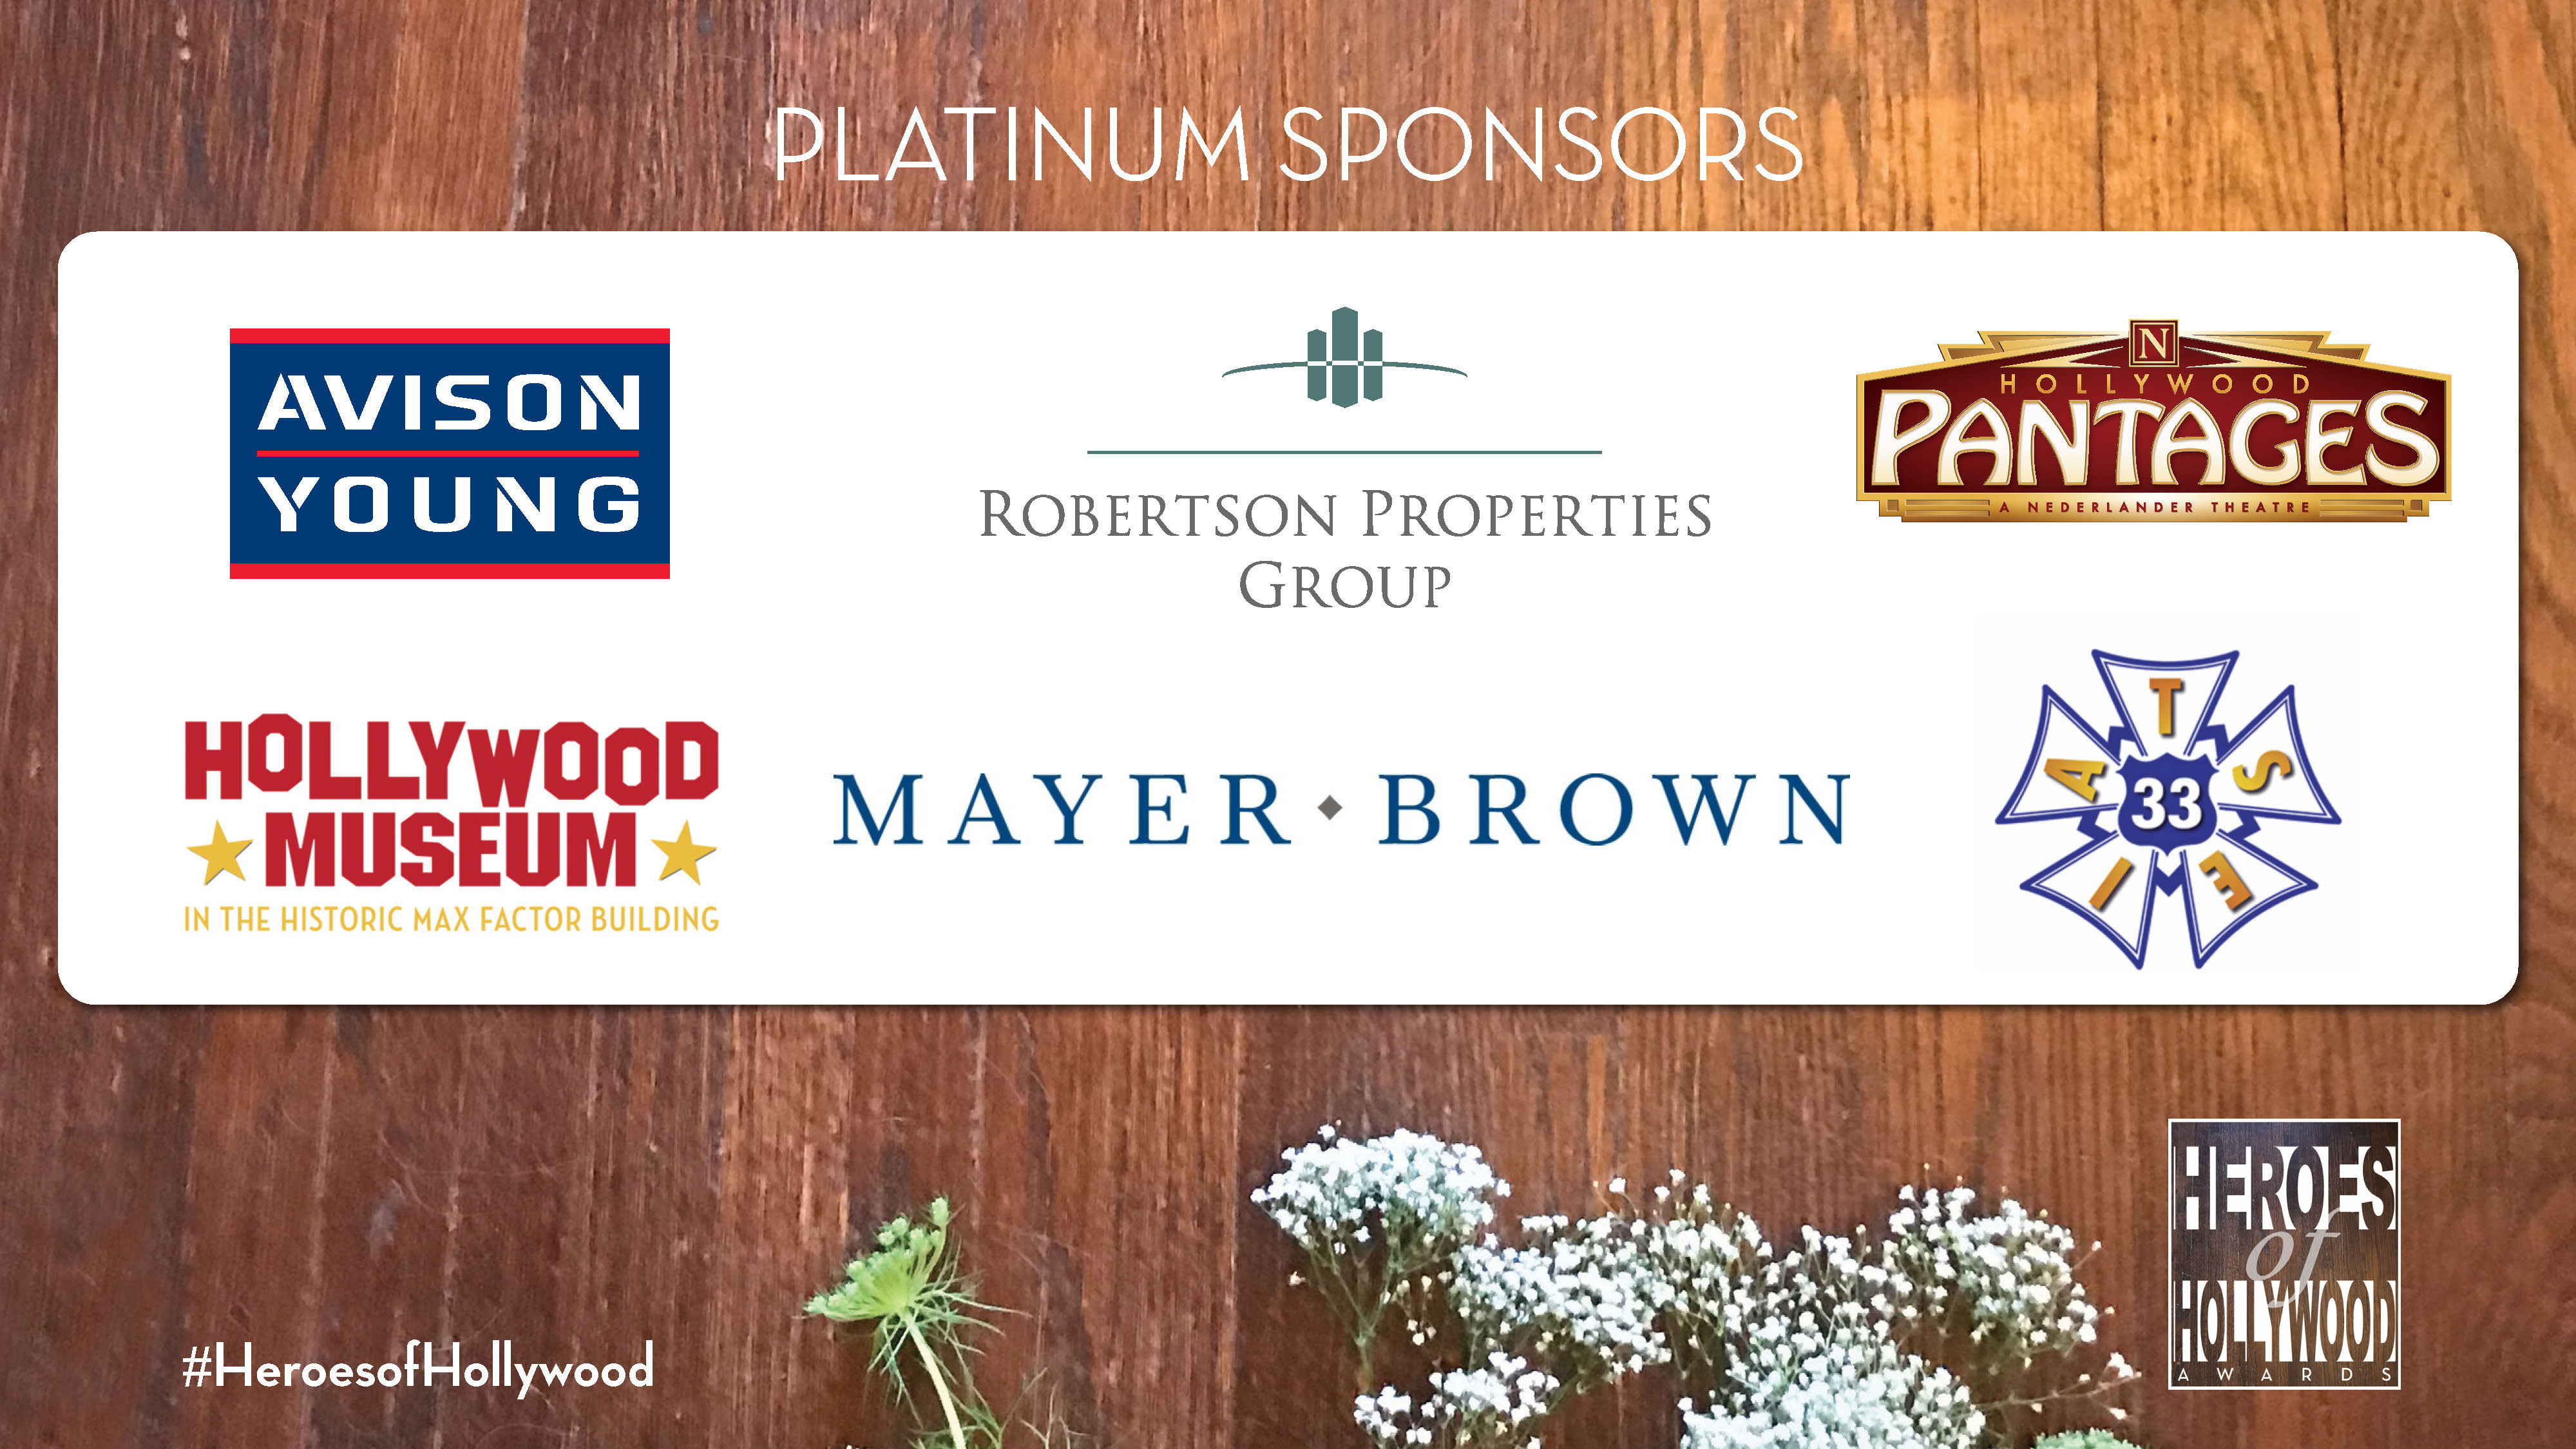 Platinum Level sponsors of Heroes of Hollywood 2018